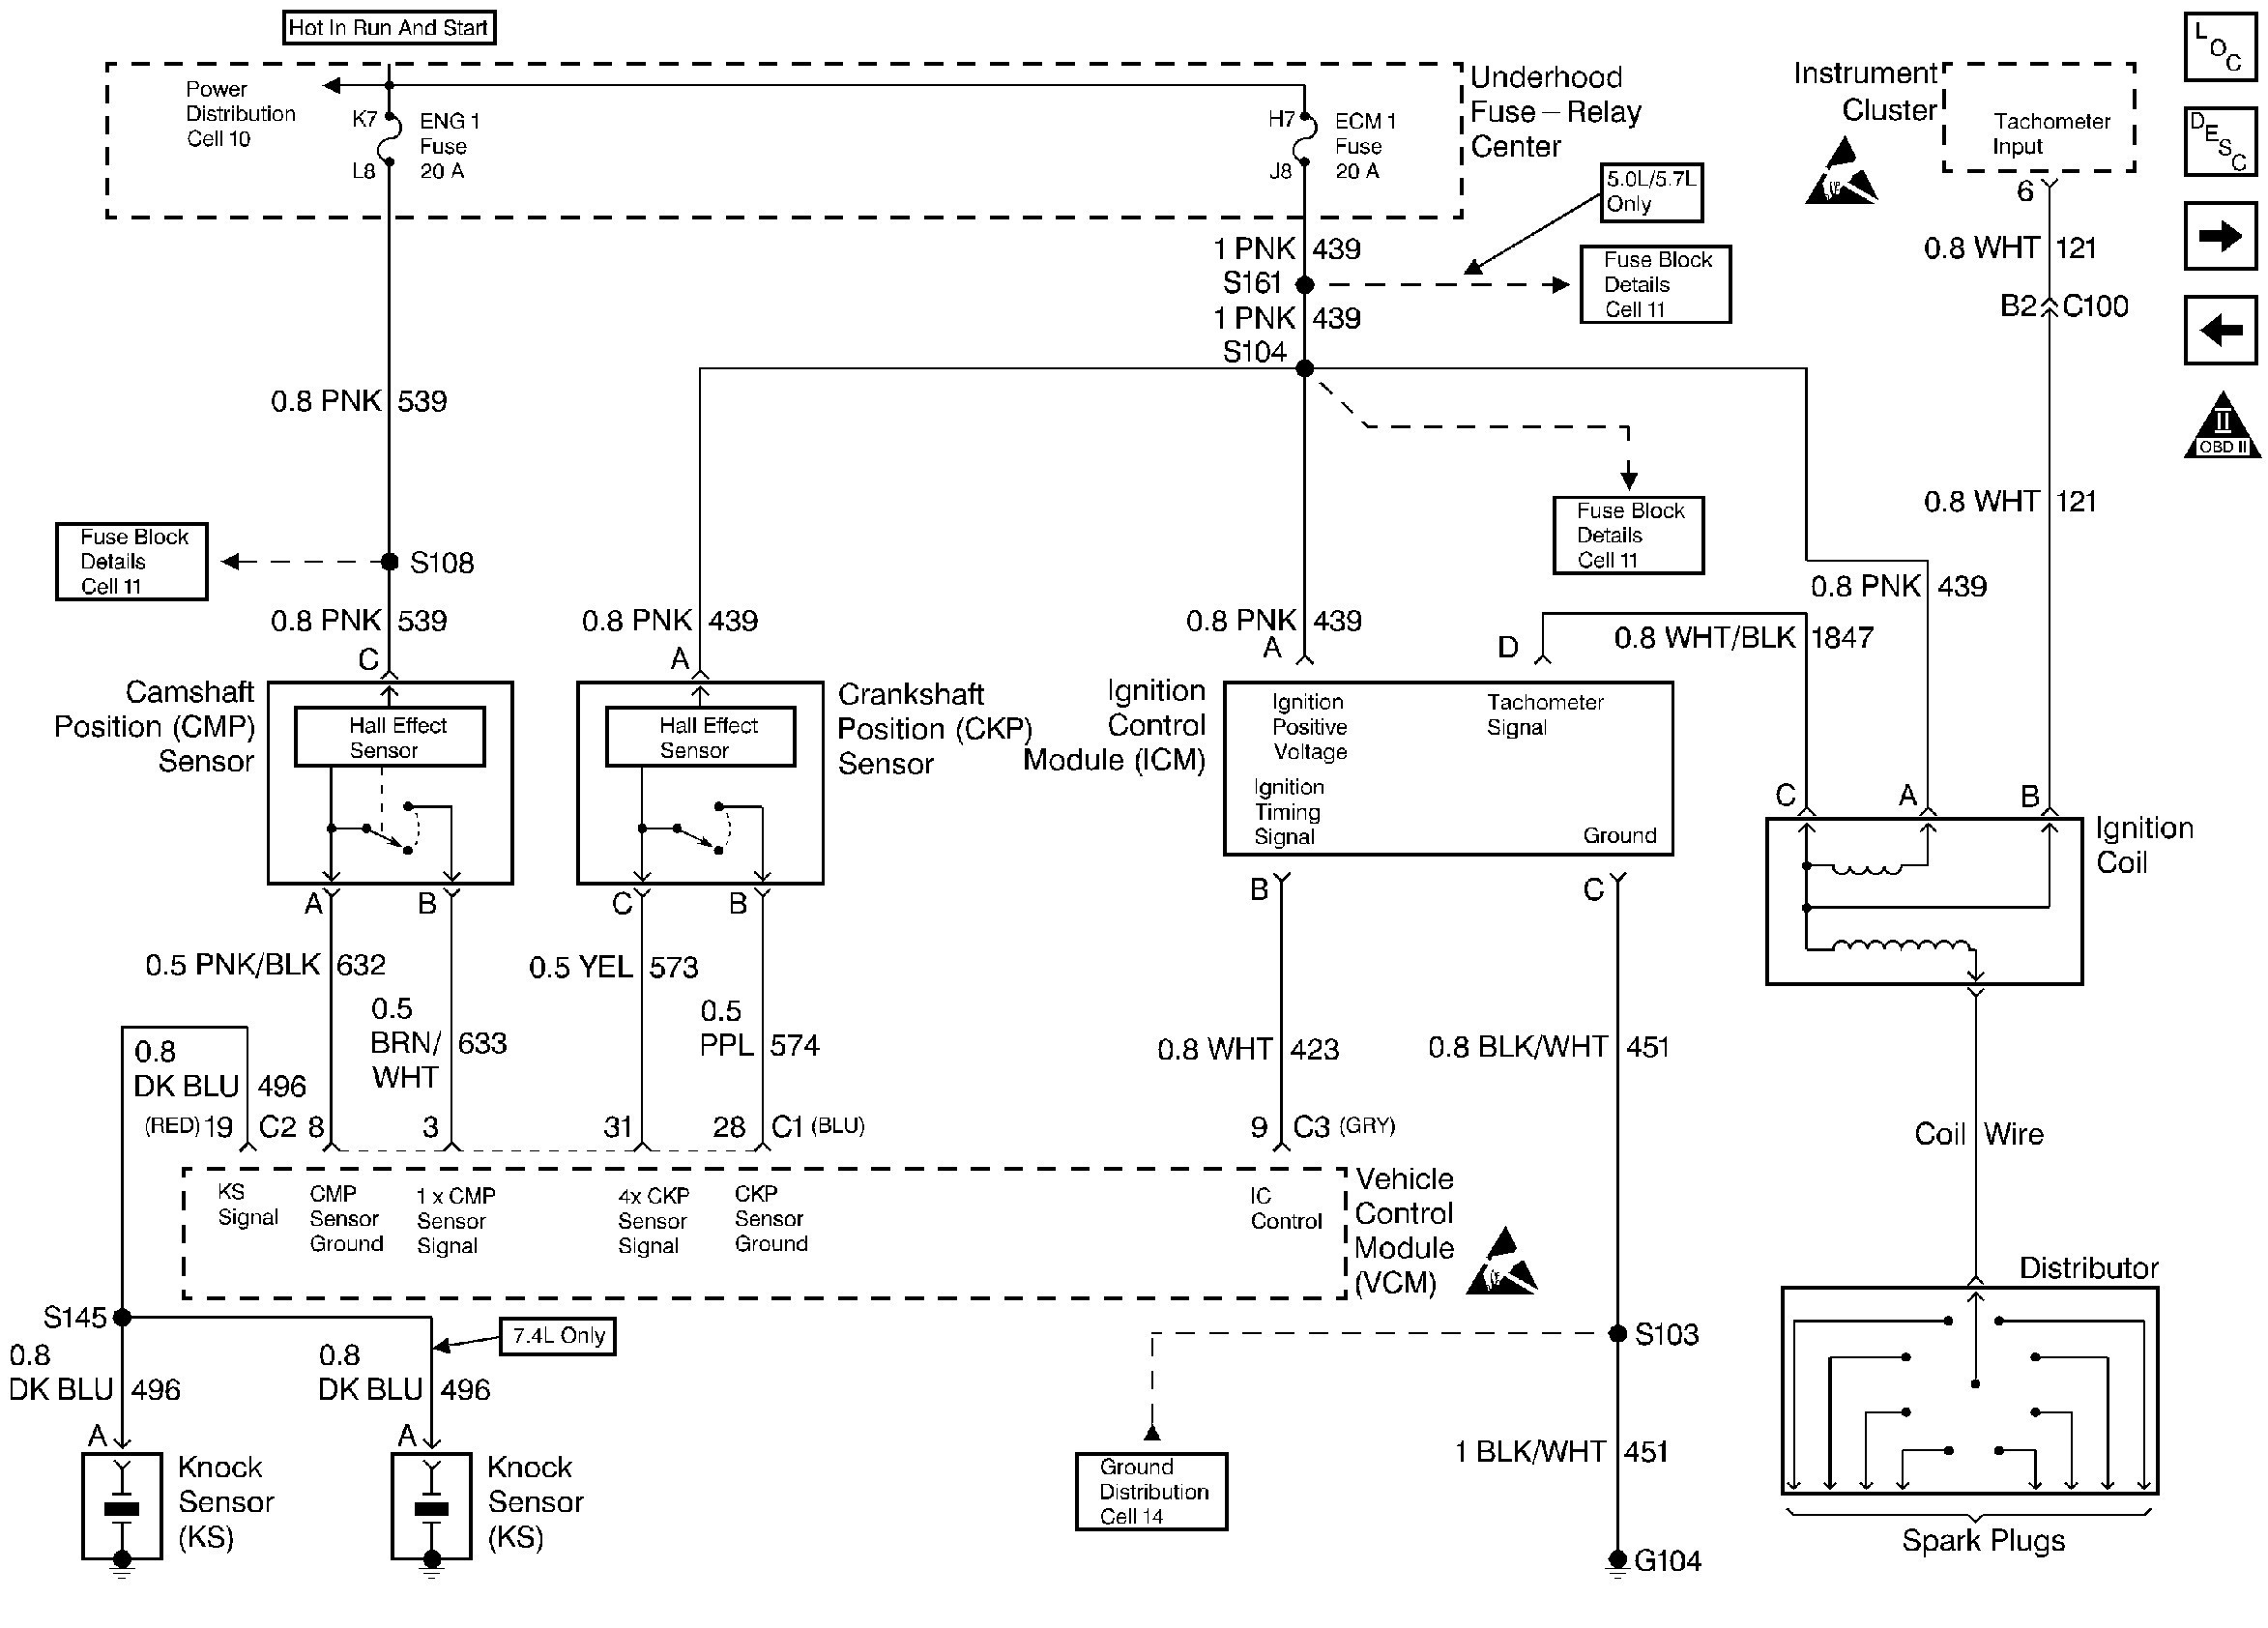 chevy suburban engine diagram hl 8035  chevy 5 3 engine diagram on v8 engine diagram 1999 chevy  v8 engine diagram 1999 chevy